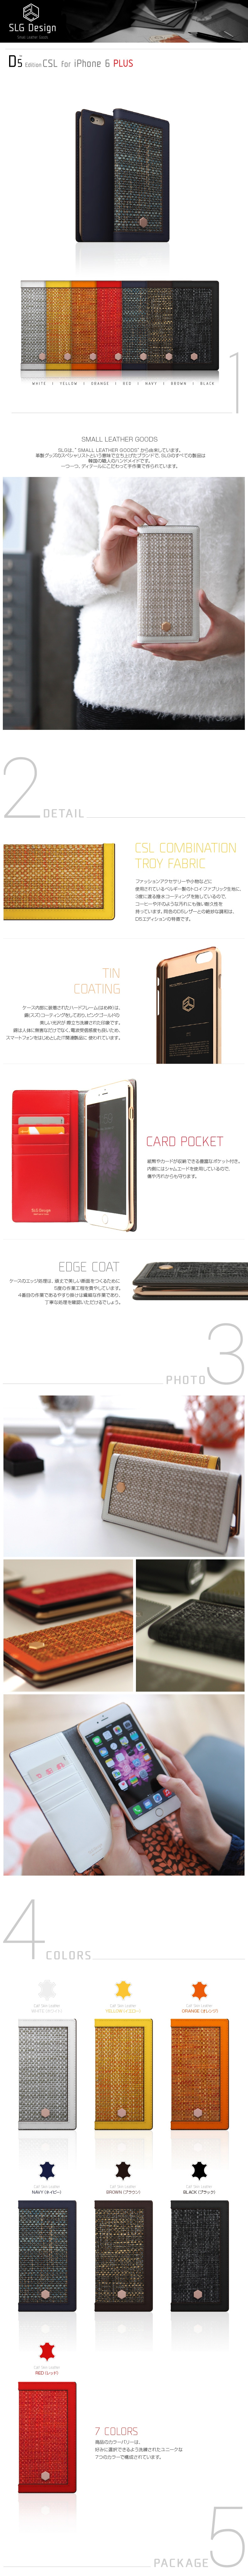 【iPhone6 ケース】 SLG Design D4 Metal Leather Diary